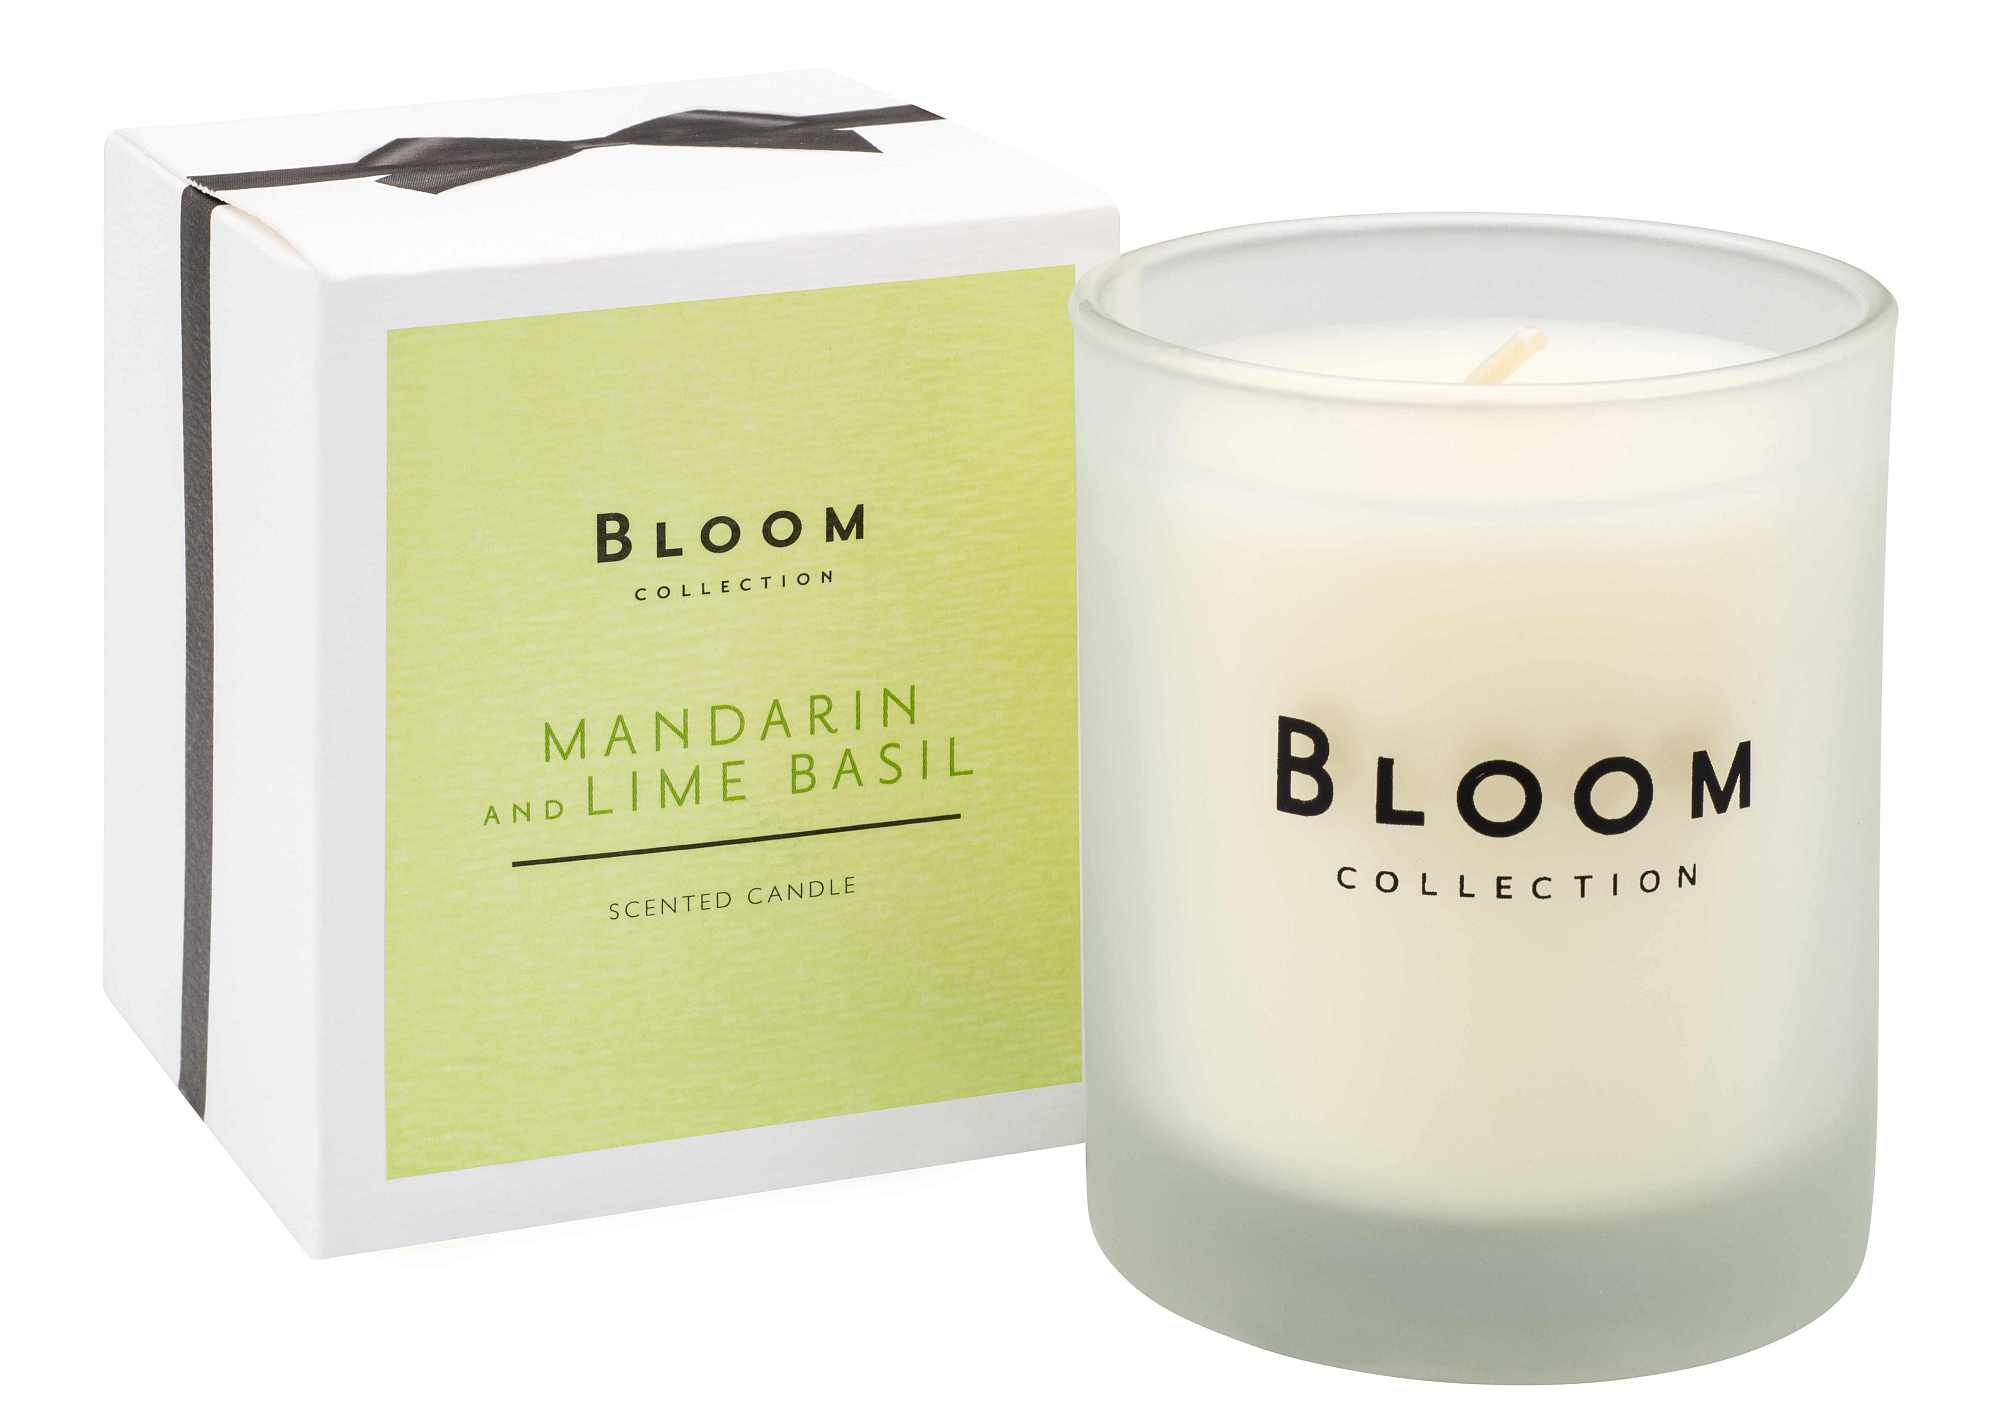 superdrug bloom jo malone inspired candles review bt. Black Bedroom Furniture Sets. Home Design Ideas